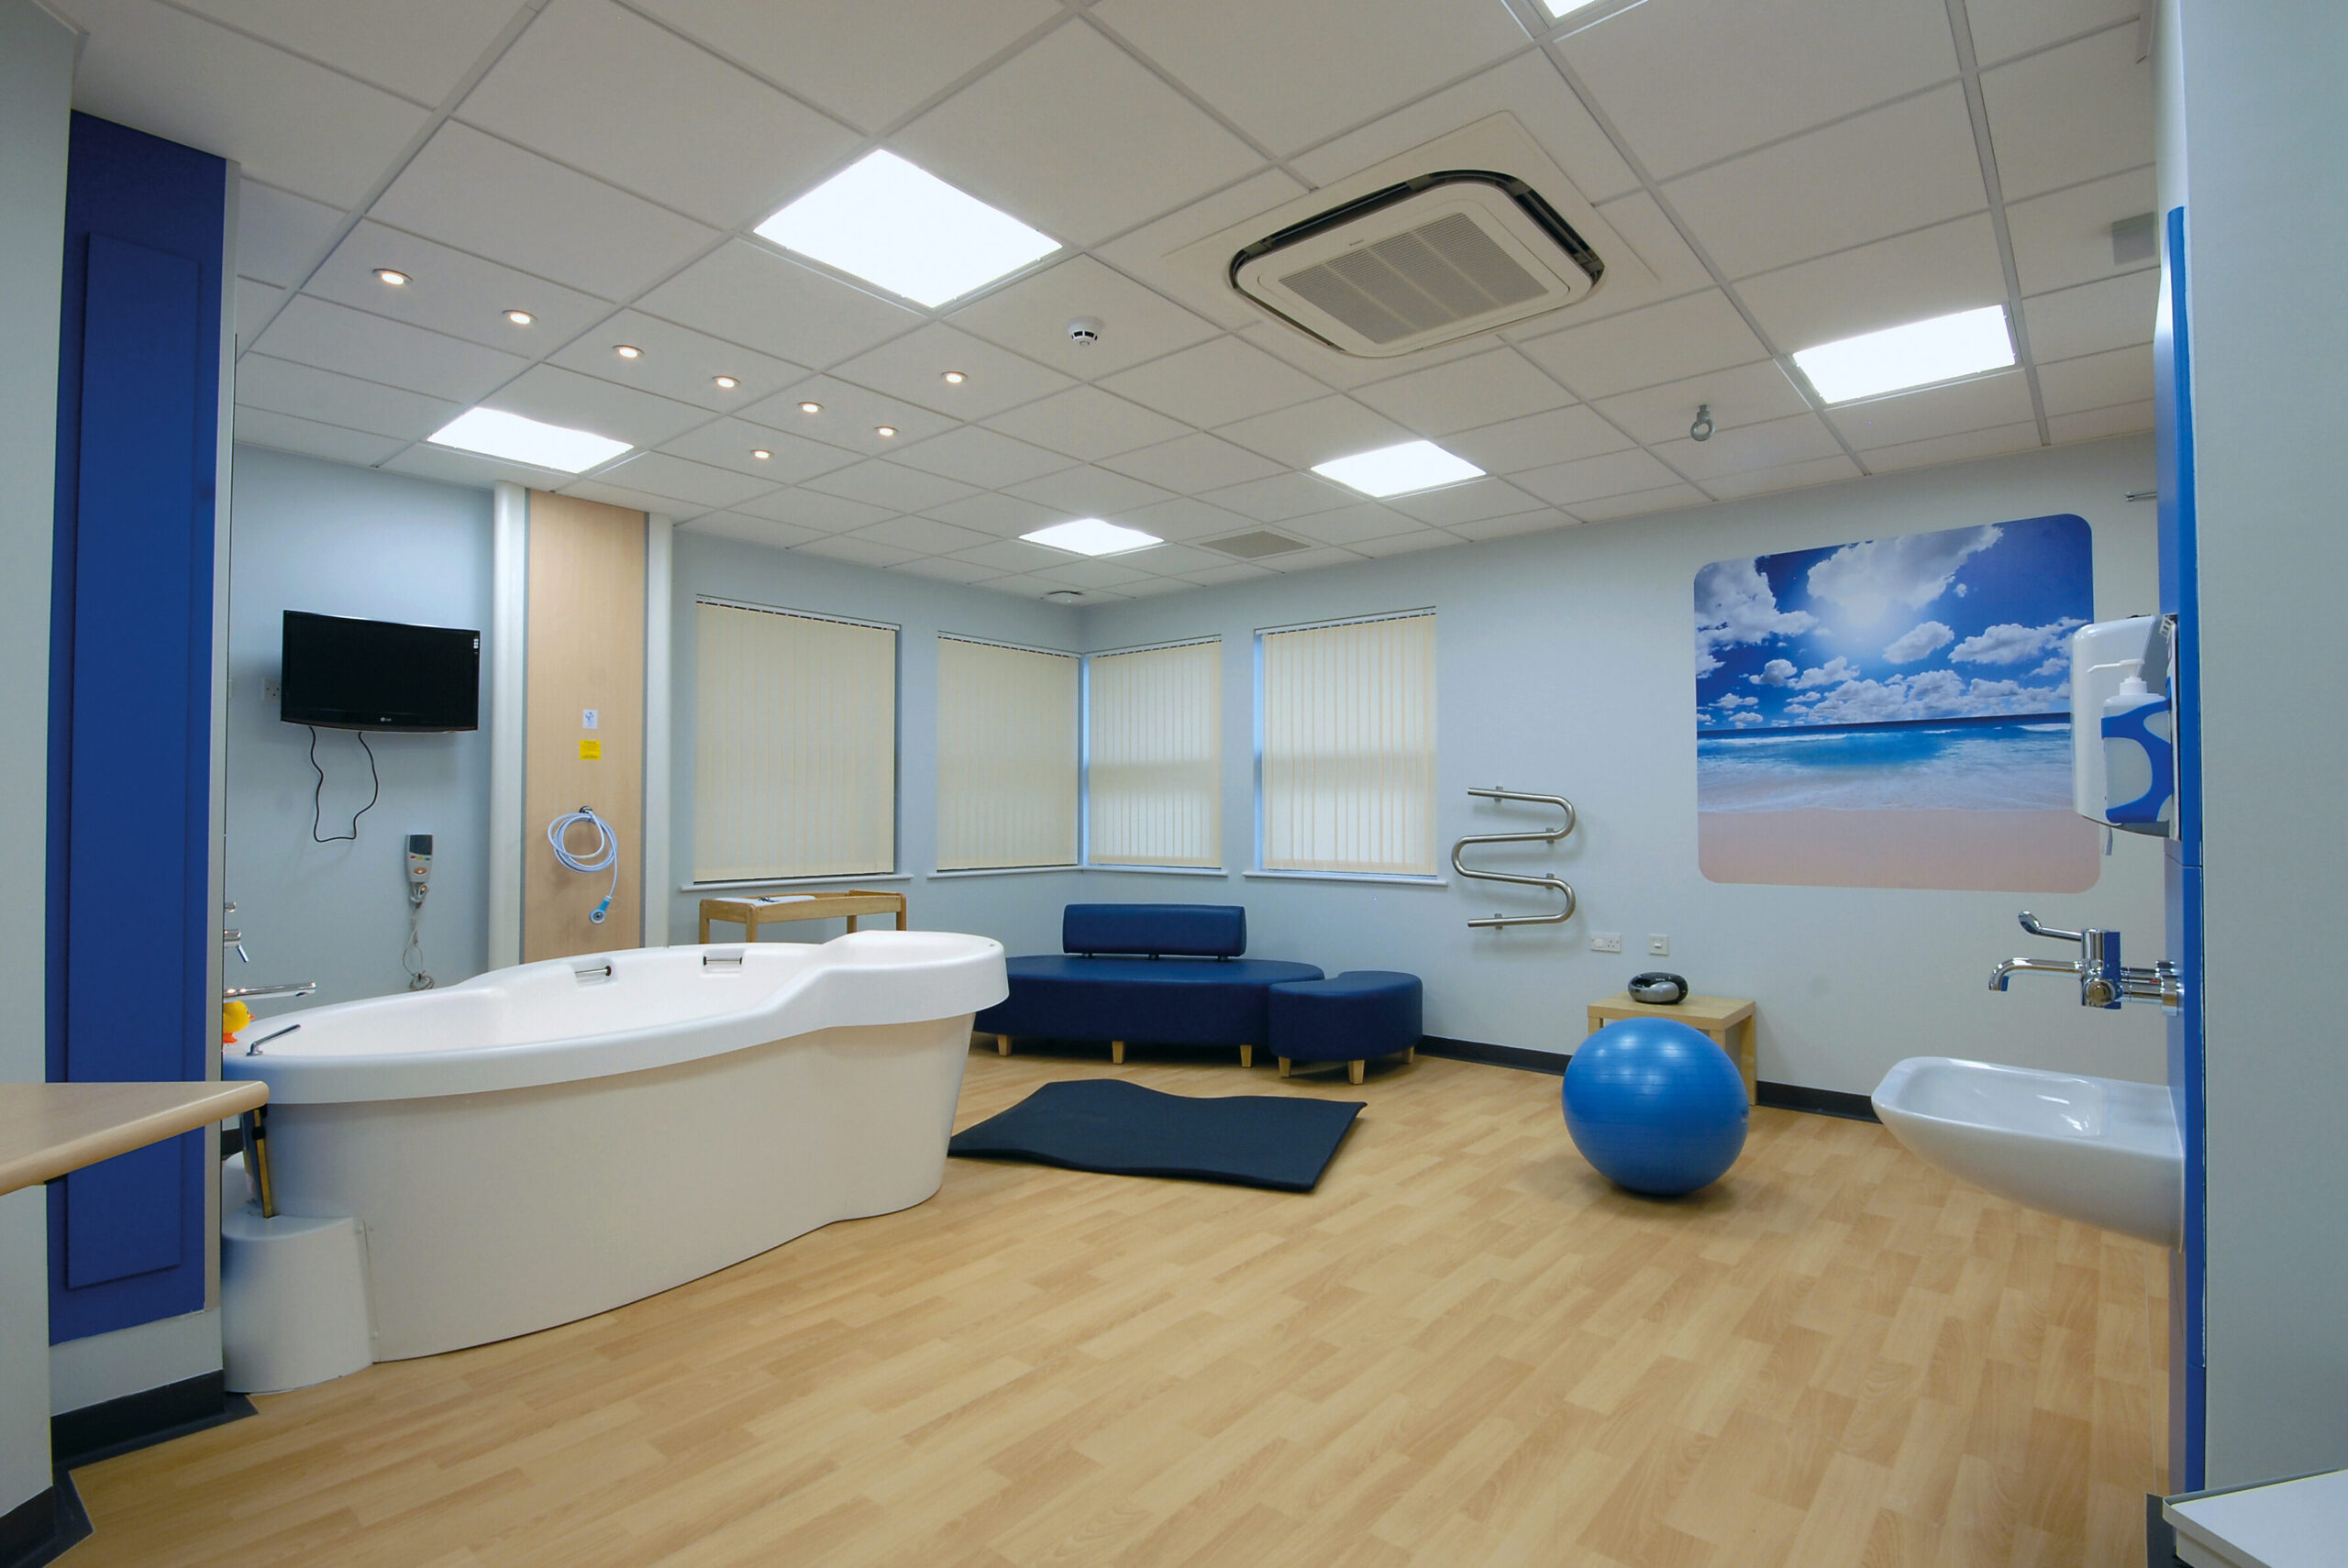 ModuleCo Modular Healthcare Maternity Unit Image